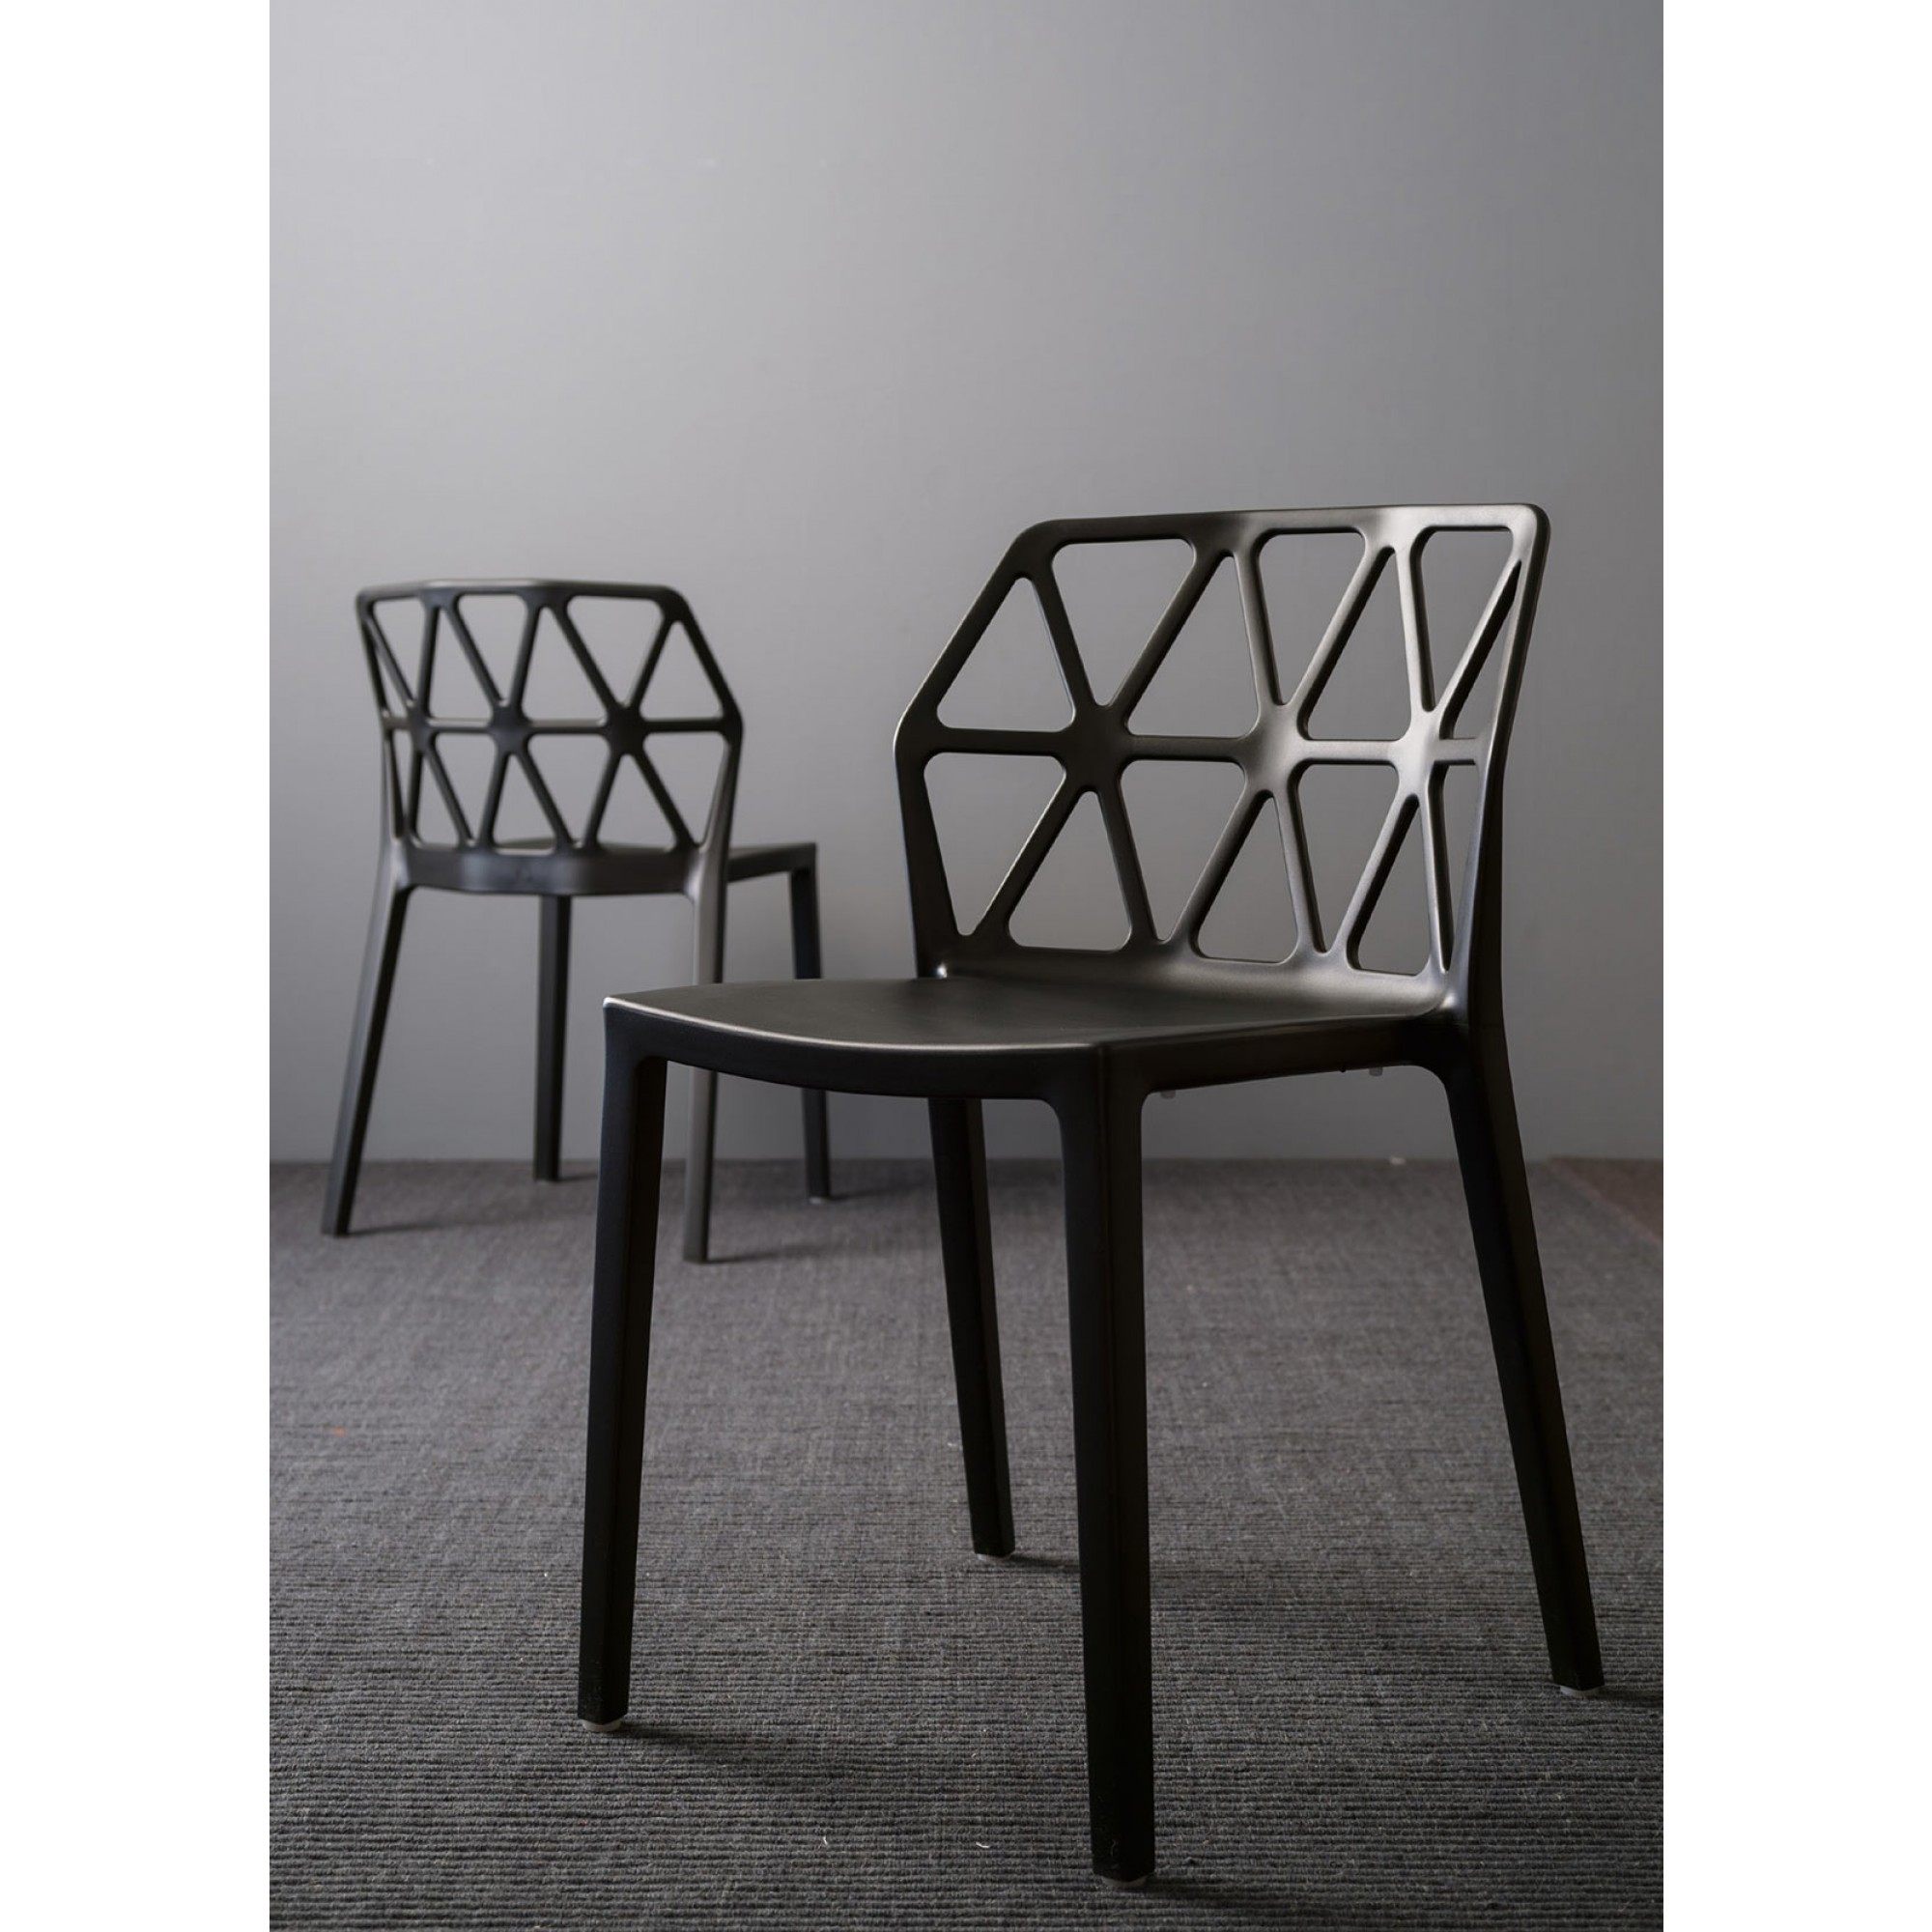 Sedia Alchemia Calligaris.Alchemia Chairs Seats Connubia By Calligaris